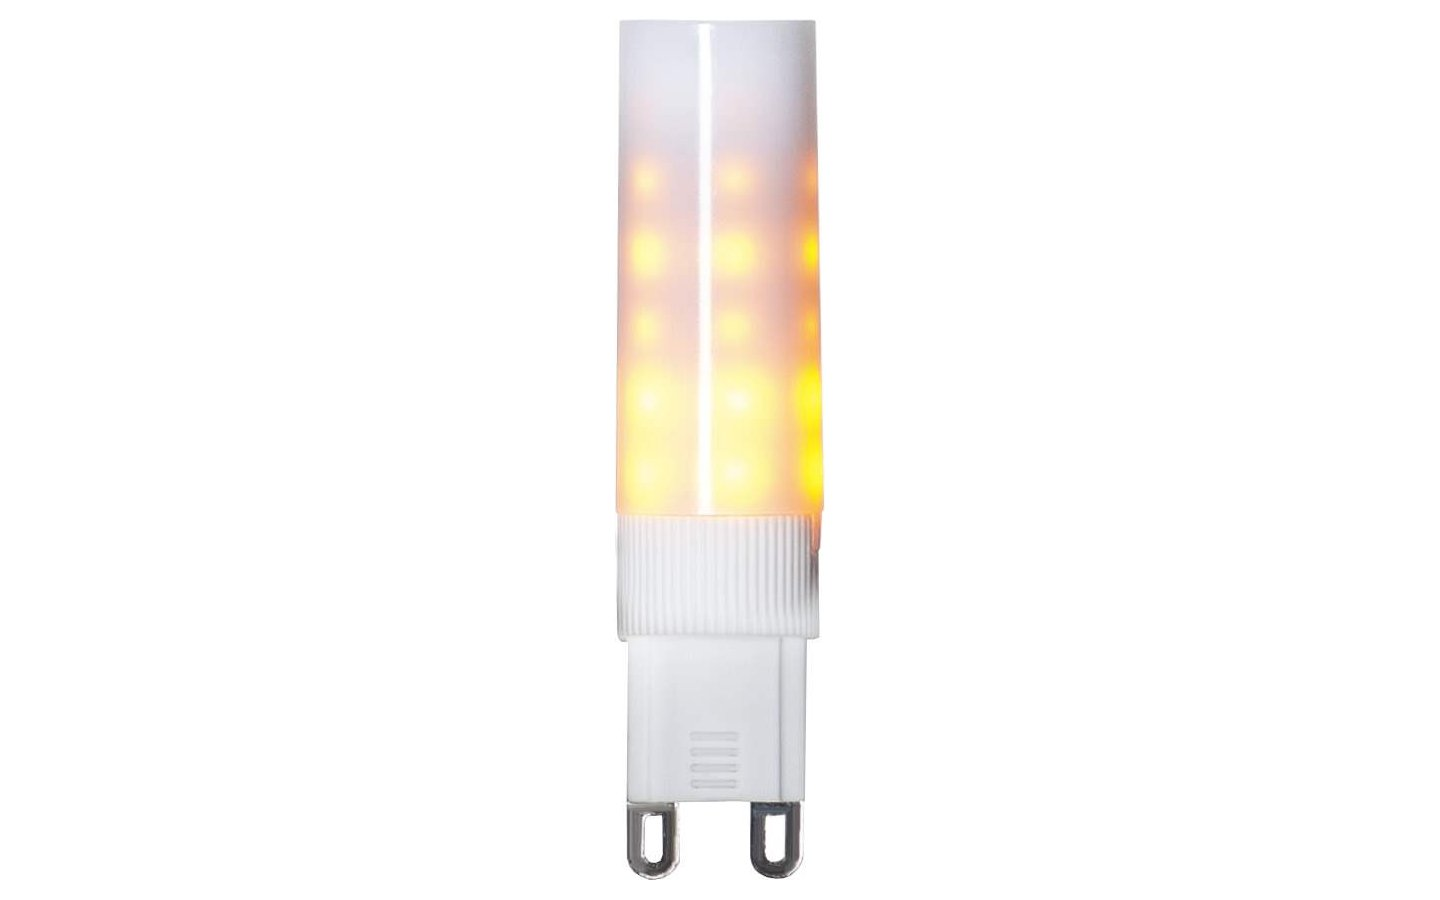 LED G9, Moving Flame 1200K 16lm 0,6-1,4W